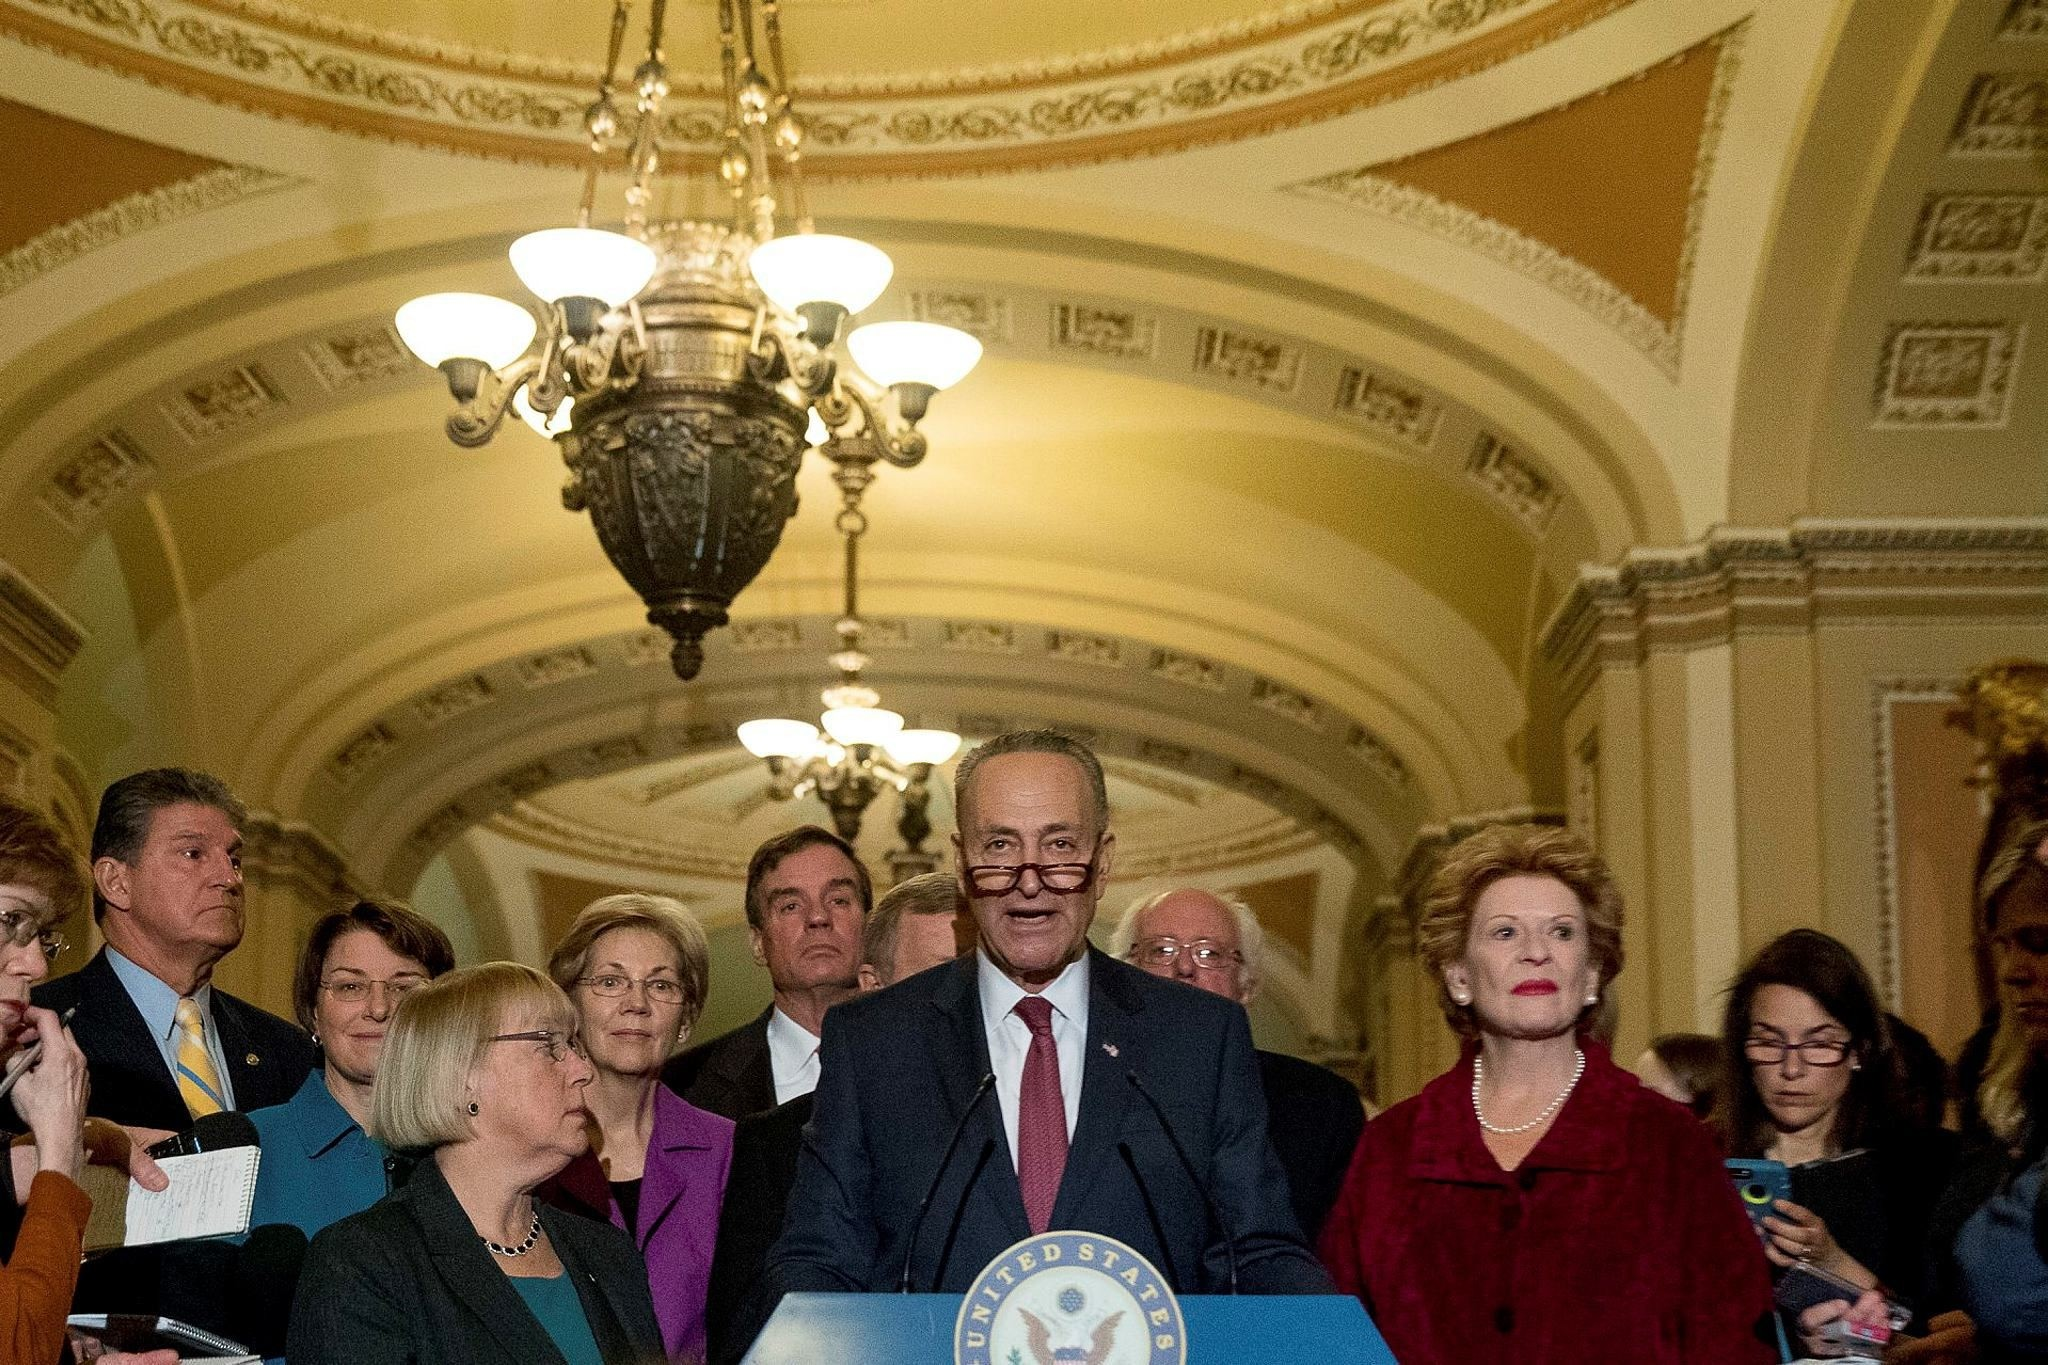 Sen. Chuck Schumer, D-N.Y., center, accompanied by the Senate Democrats, speaks to reporters on Capitol Hill in Washington, Wednesday, Nov. 16, 2016. (AP Photo)